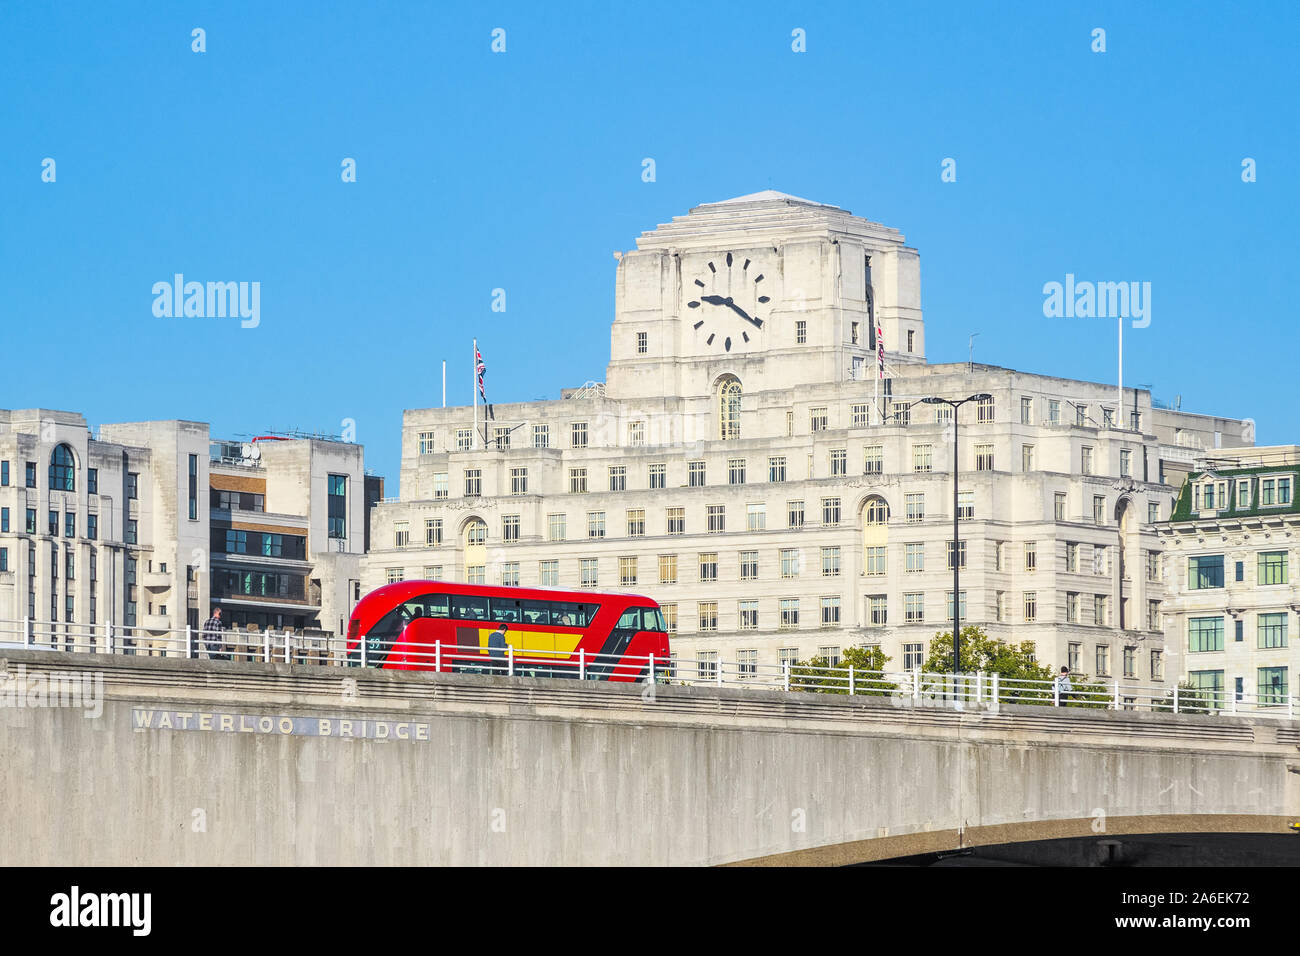 Waterloo Bridge with a passing bus and facade of Shell Mex House in the background in London Stock Photo